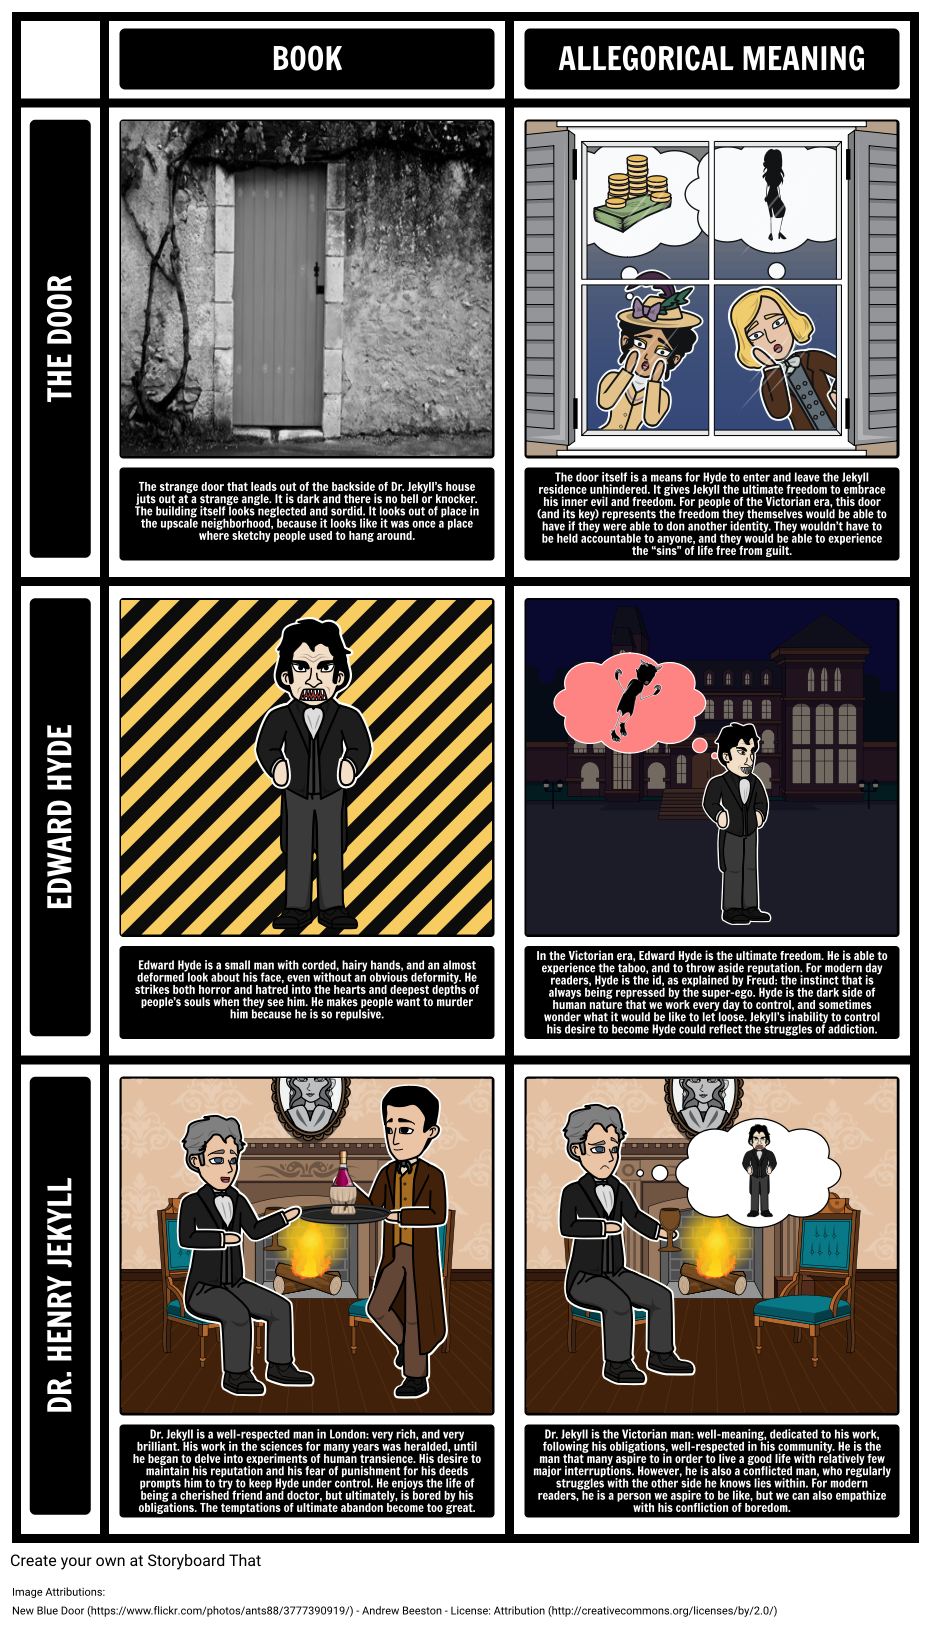 allegory in dr jekyll and mr hyde storyboard